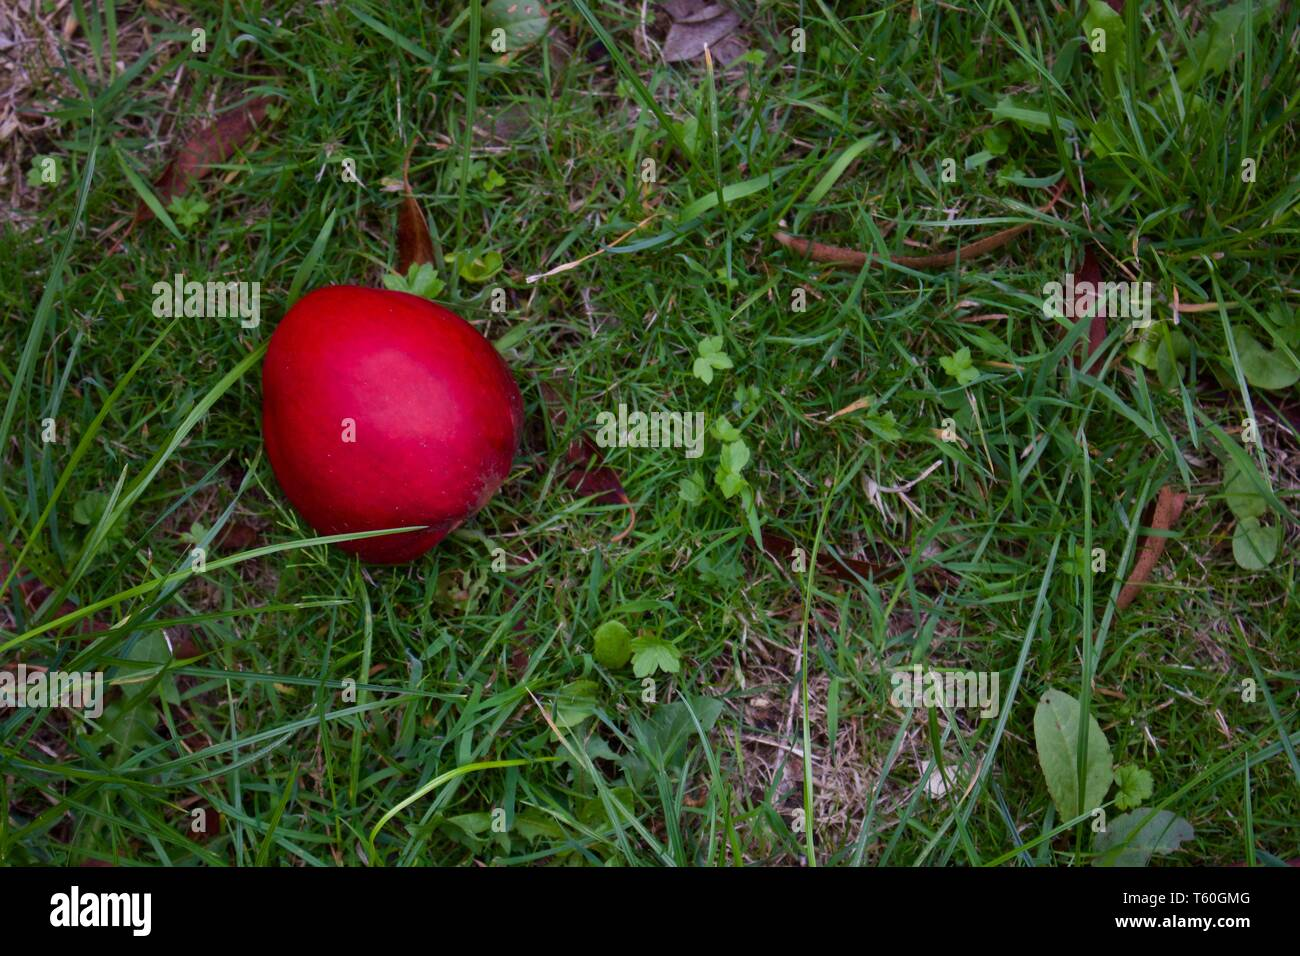 Single Red Apple Lying On Rough Grass In Autumn - Image Stock Photo